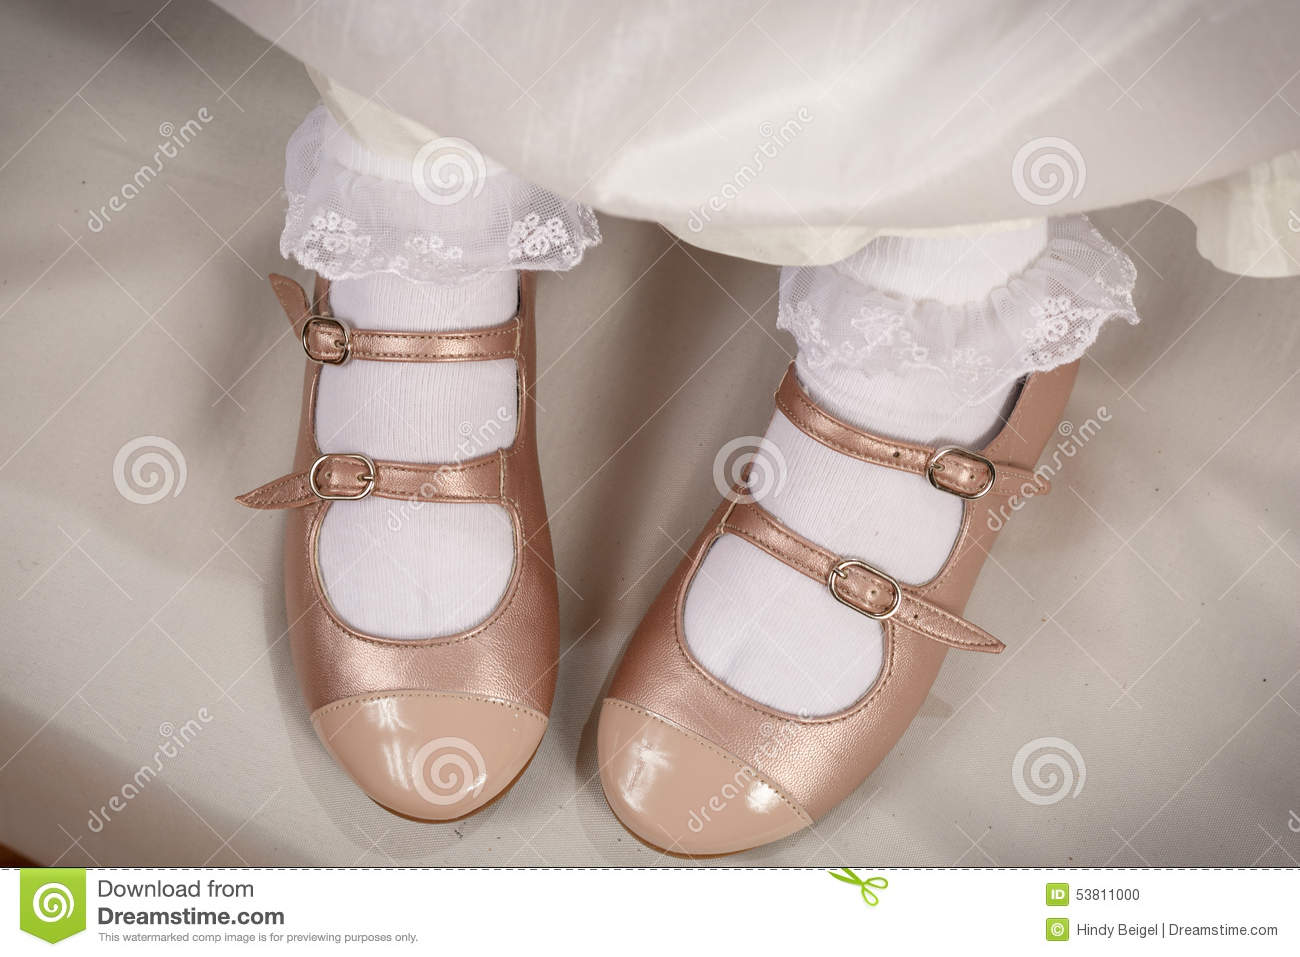 77106c40e272b Little Girl Peach Shoes With White Socks Stock Photo - Image of ...